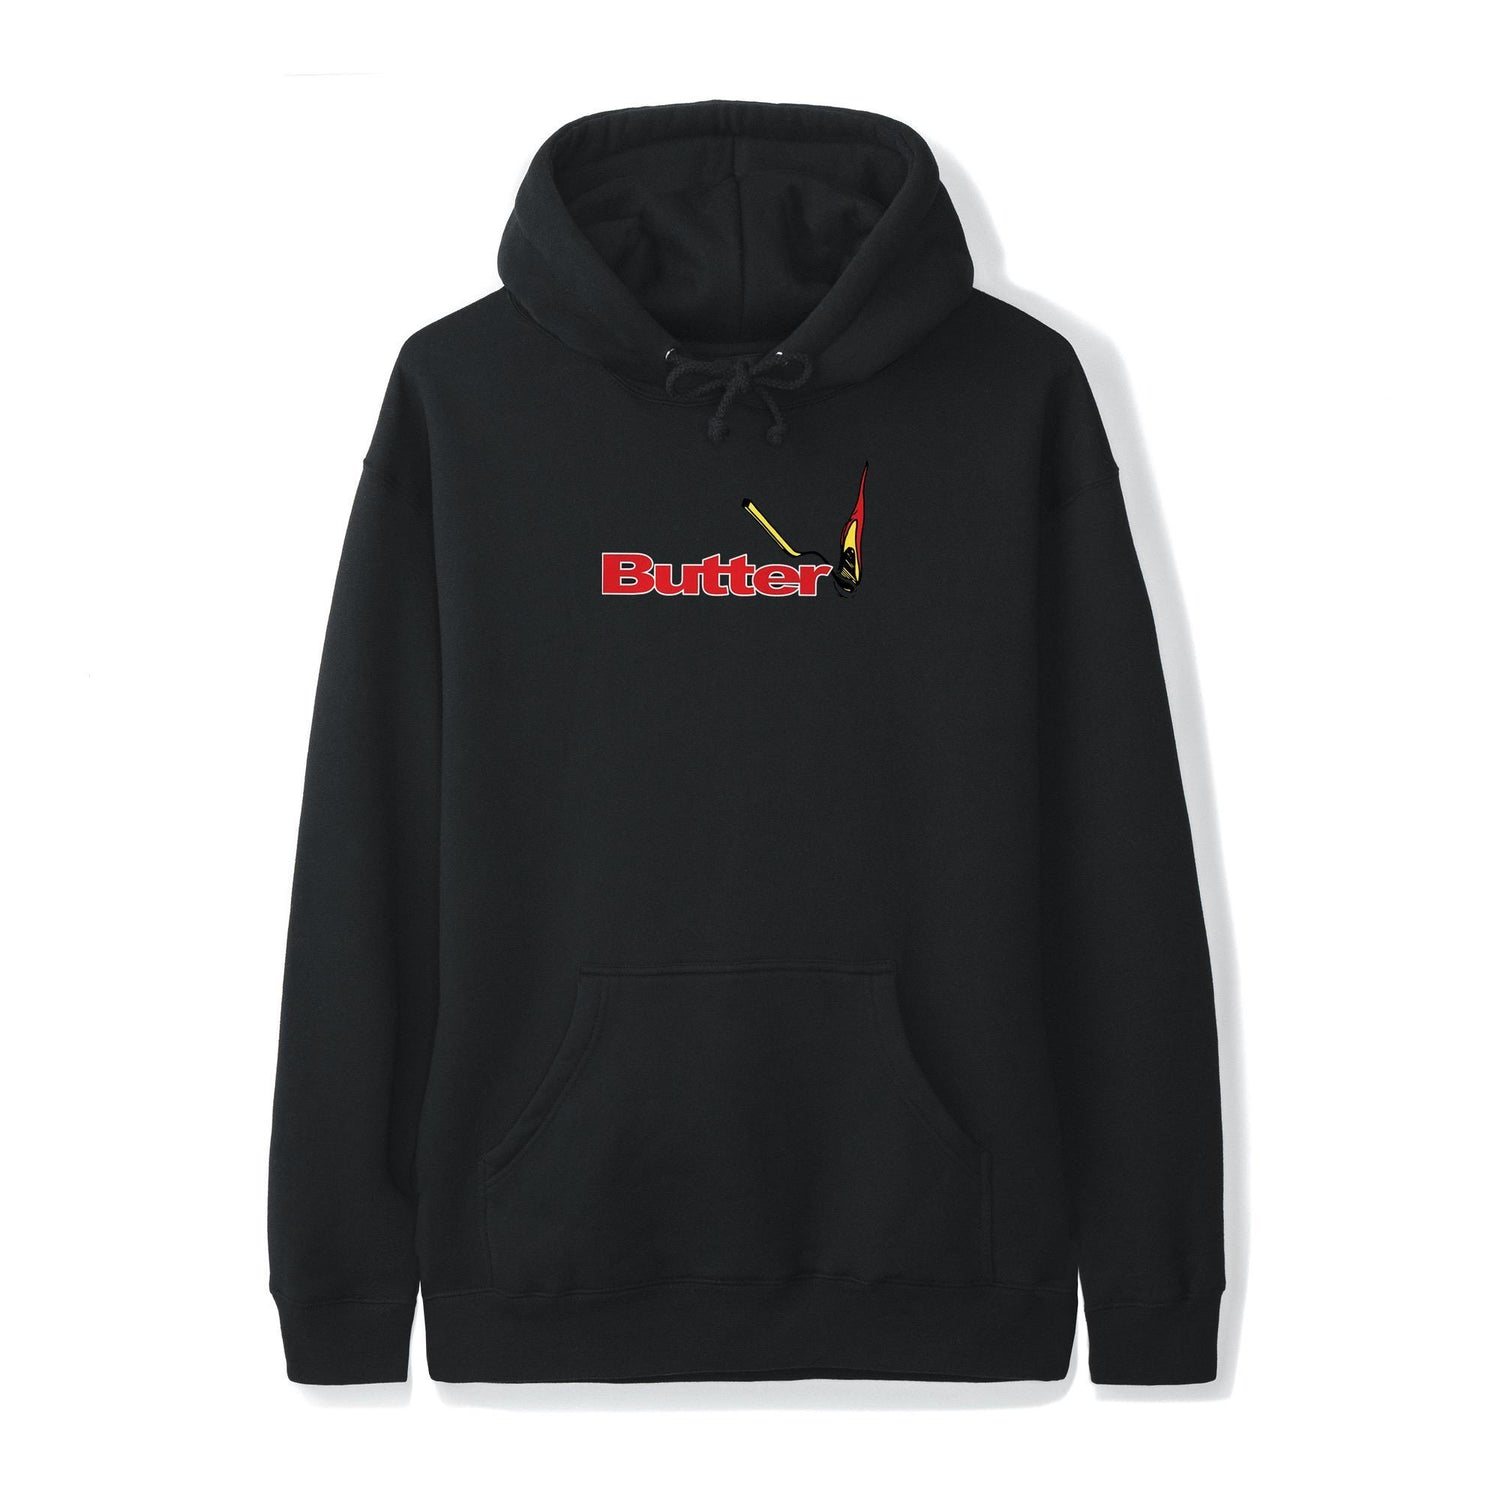 Match Pullover, Black